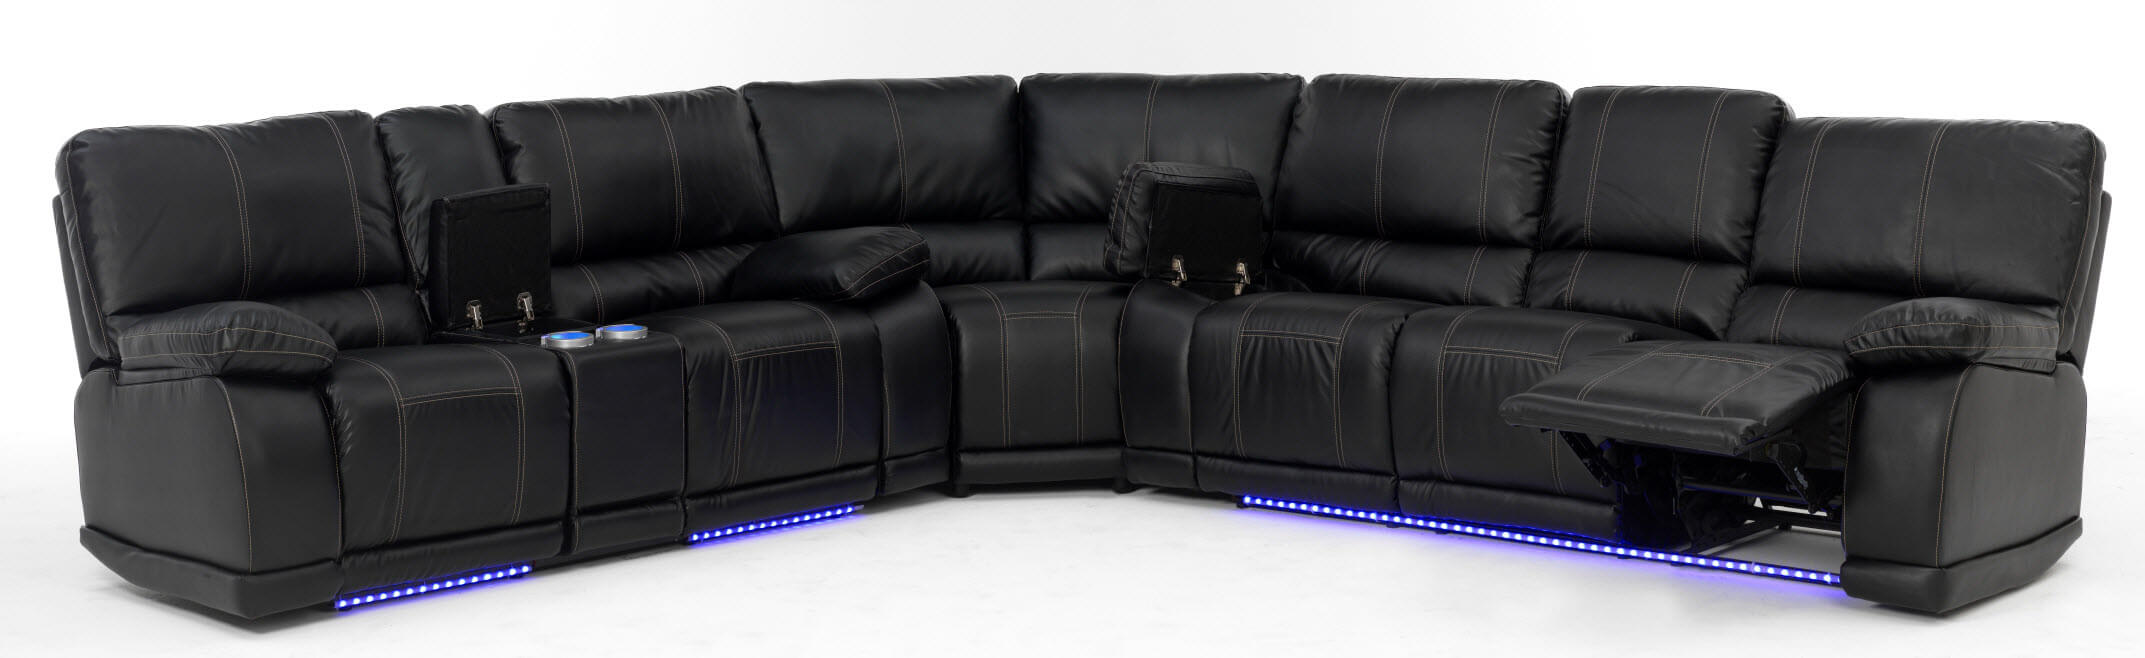 Incredible Electra Power Reclining Sectional With Led Lights Discontinued Pabps2019 Chair Design Images Pabps2019Com